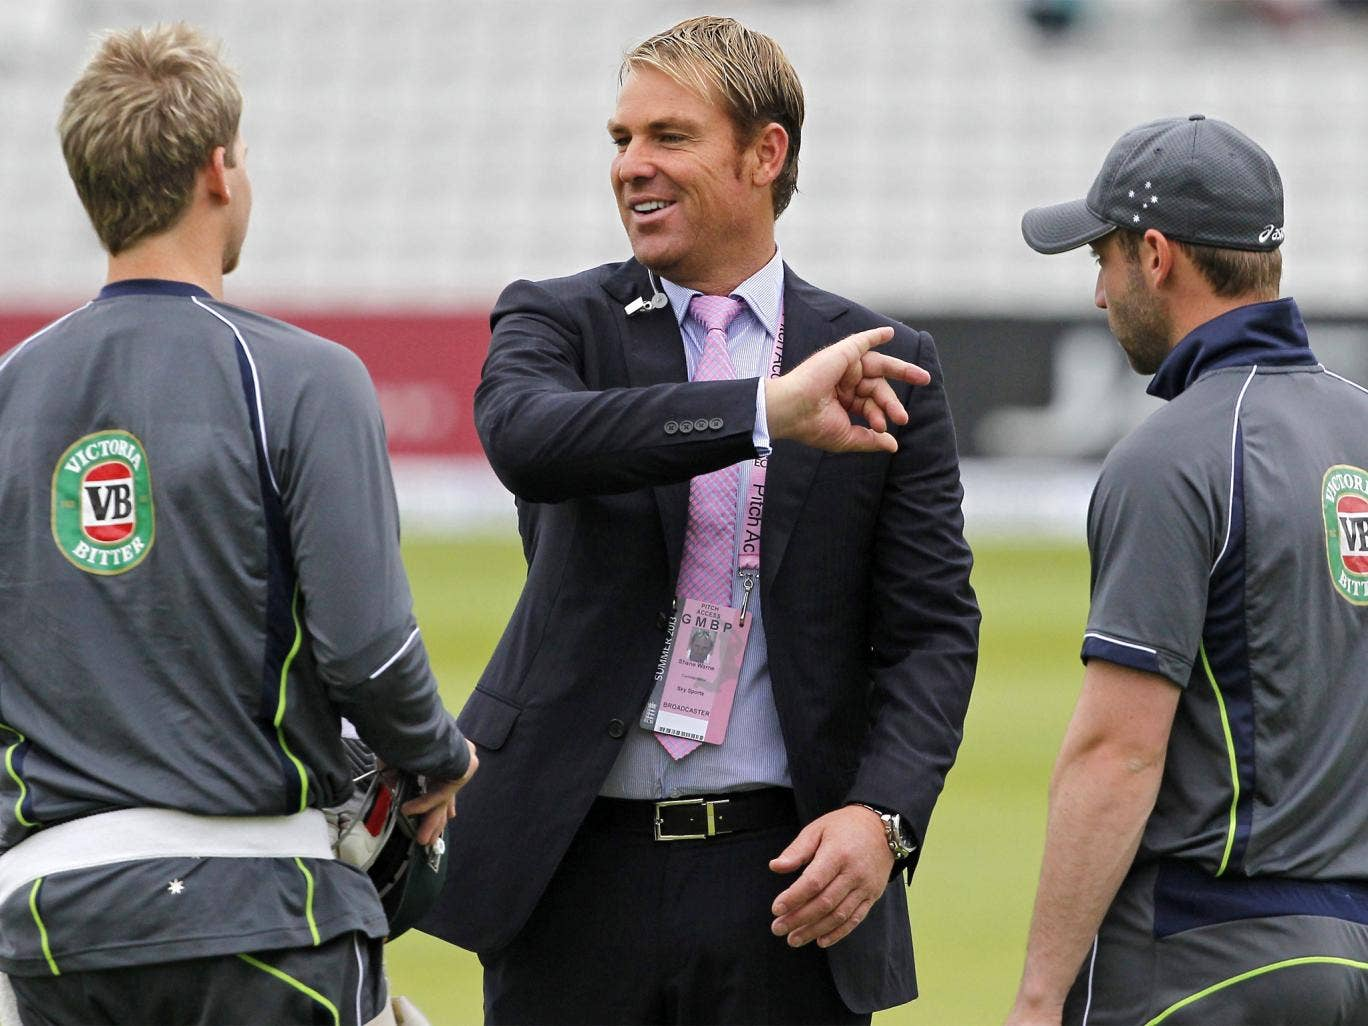 Australian greats have only been able to pass on tips during media work